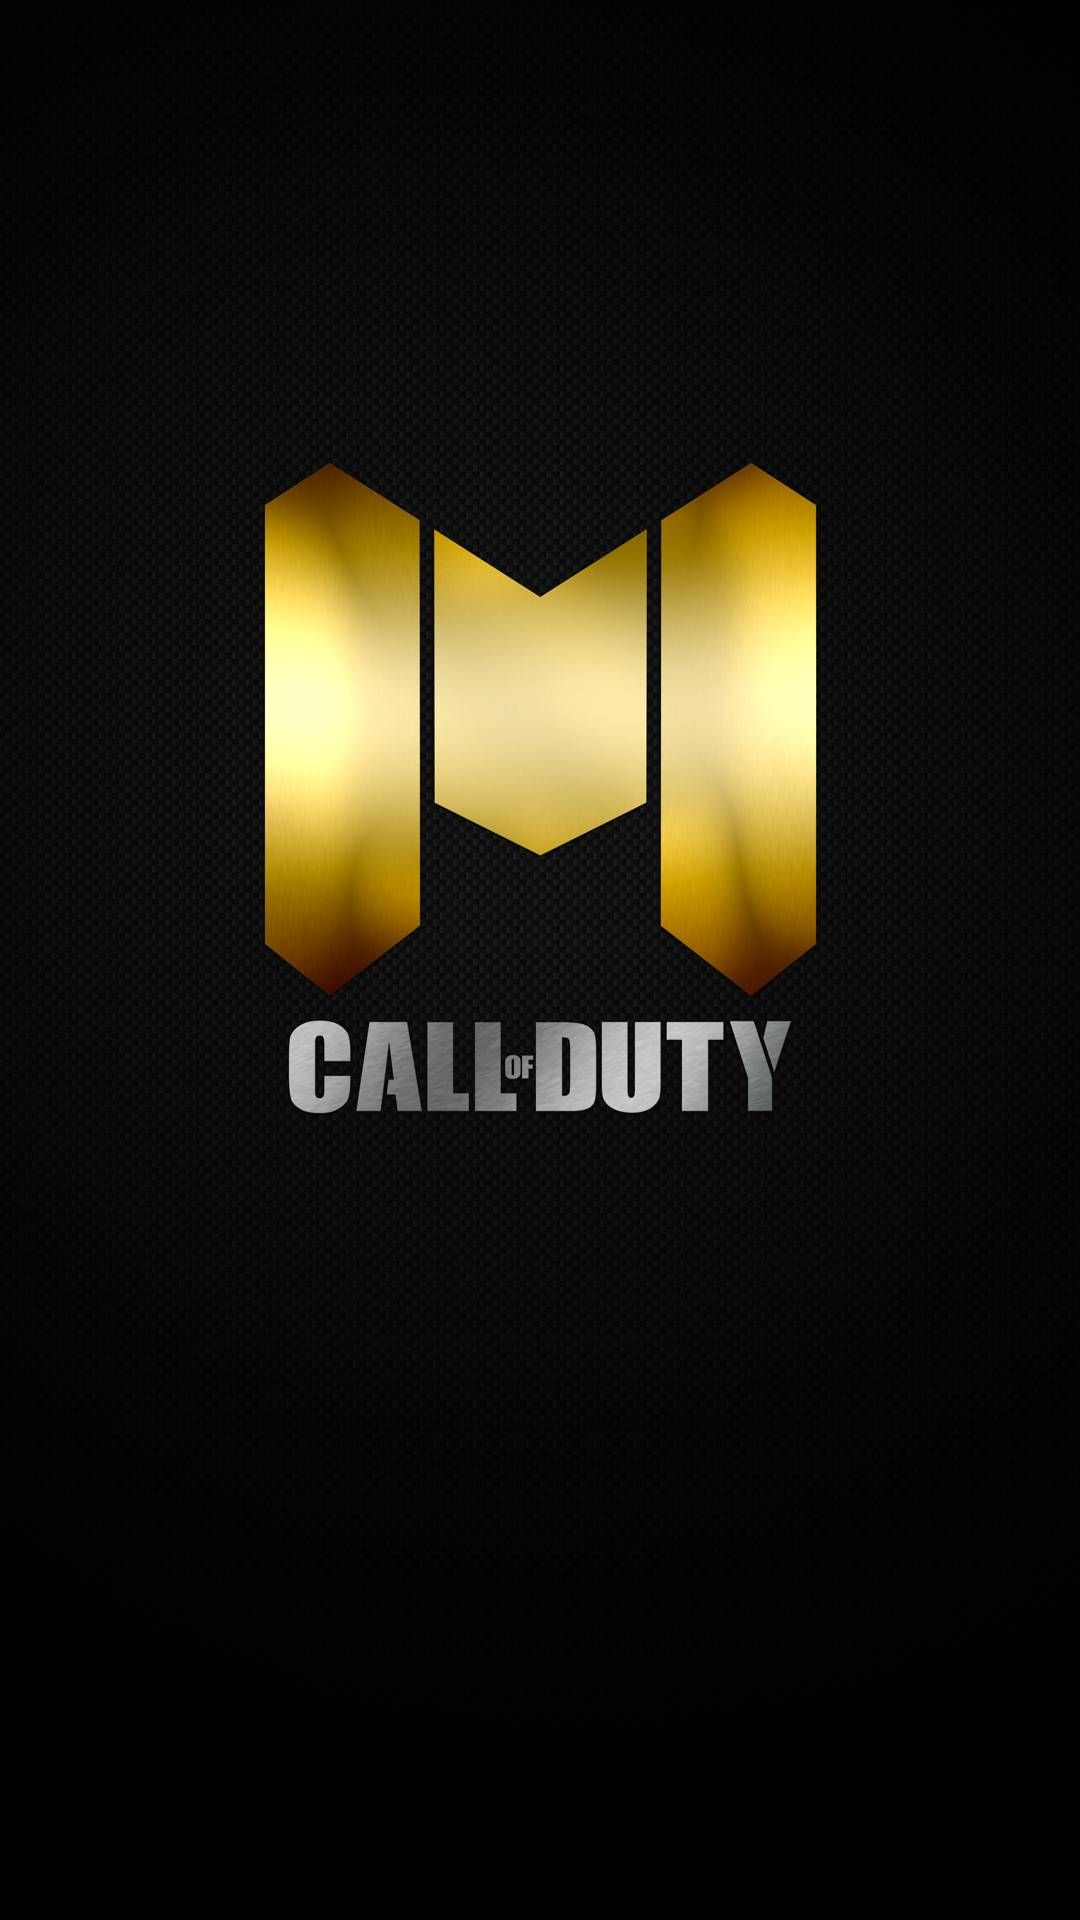 Call Of Duty Mobile Logo Wallpapers - Wallpaper Cave